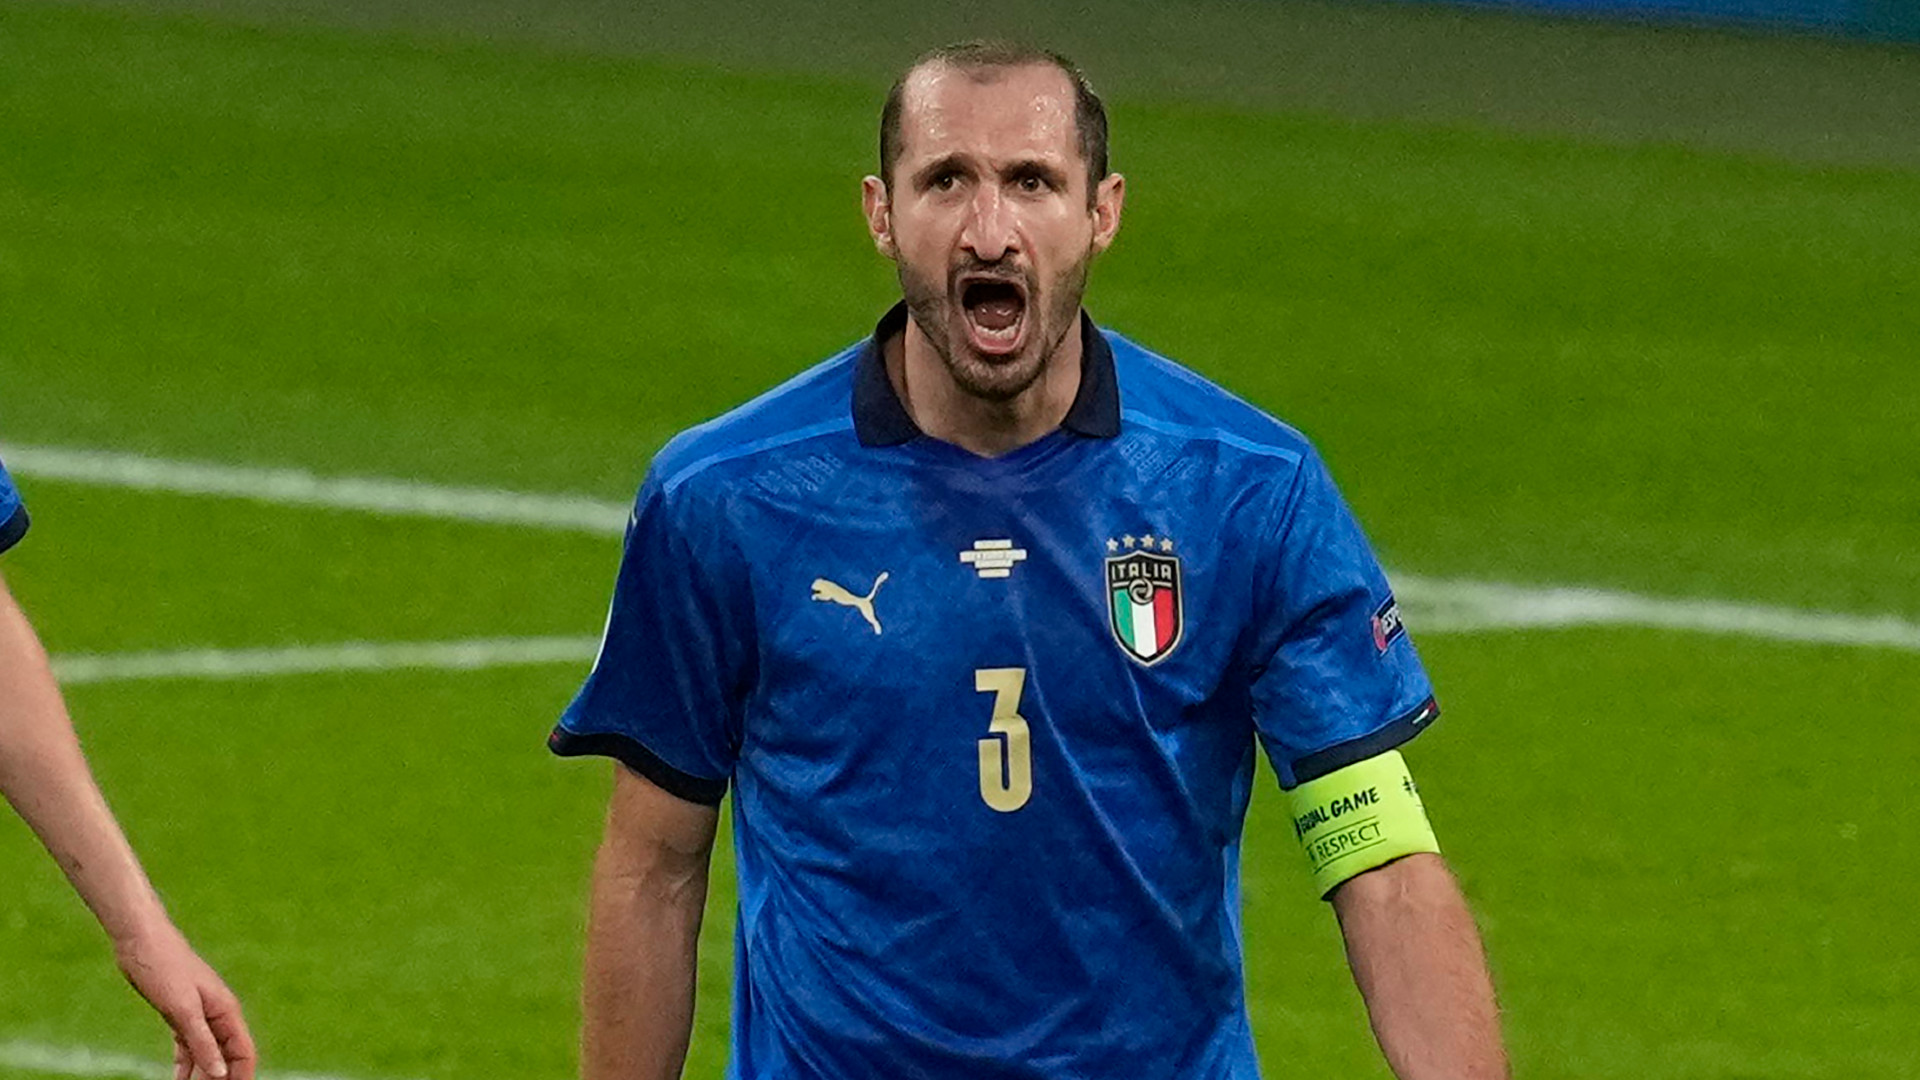 'I want to lift some more trophies' - Chiellini set to re-sign for Juve as Italy star confirms imminent return to Turin